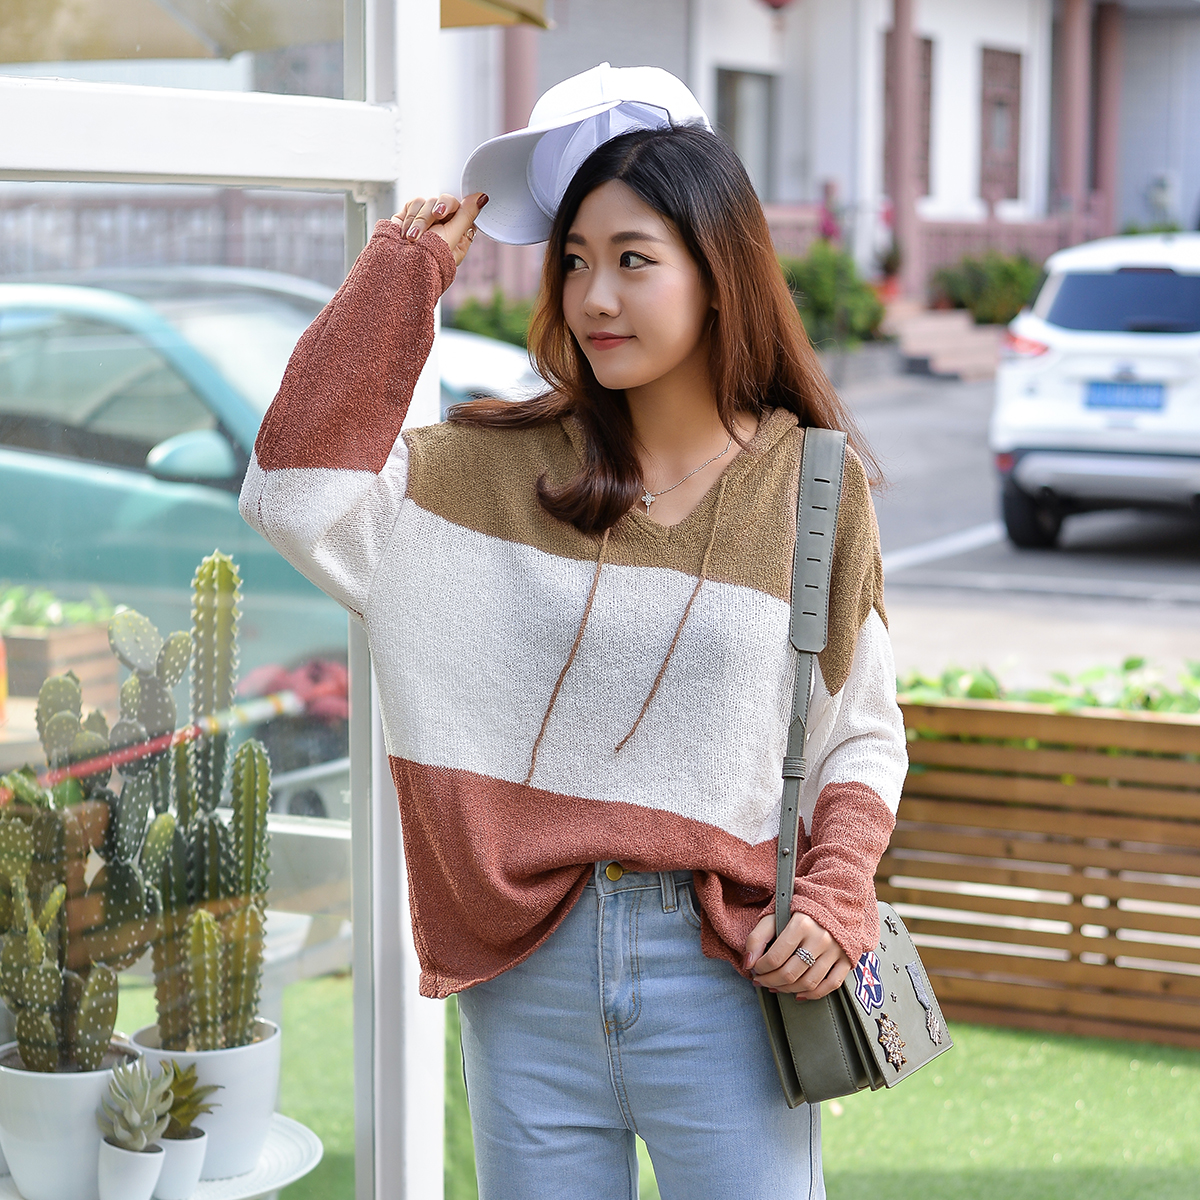 Autumn and winter new lazy style color matching striped sweater womens short hooded loose long sleeved sweater versatile student